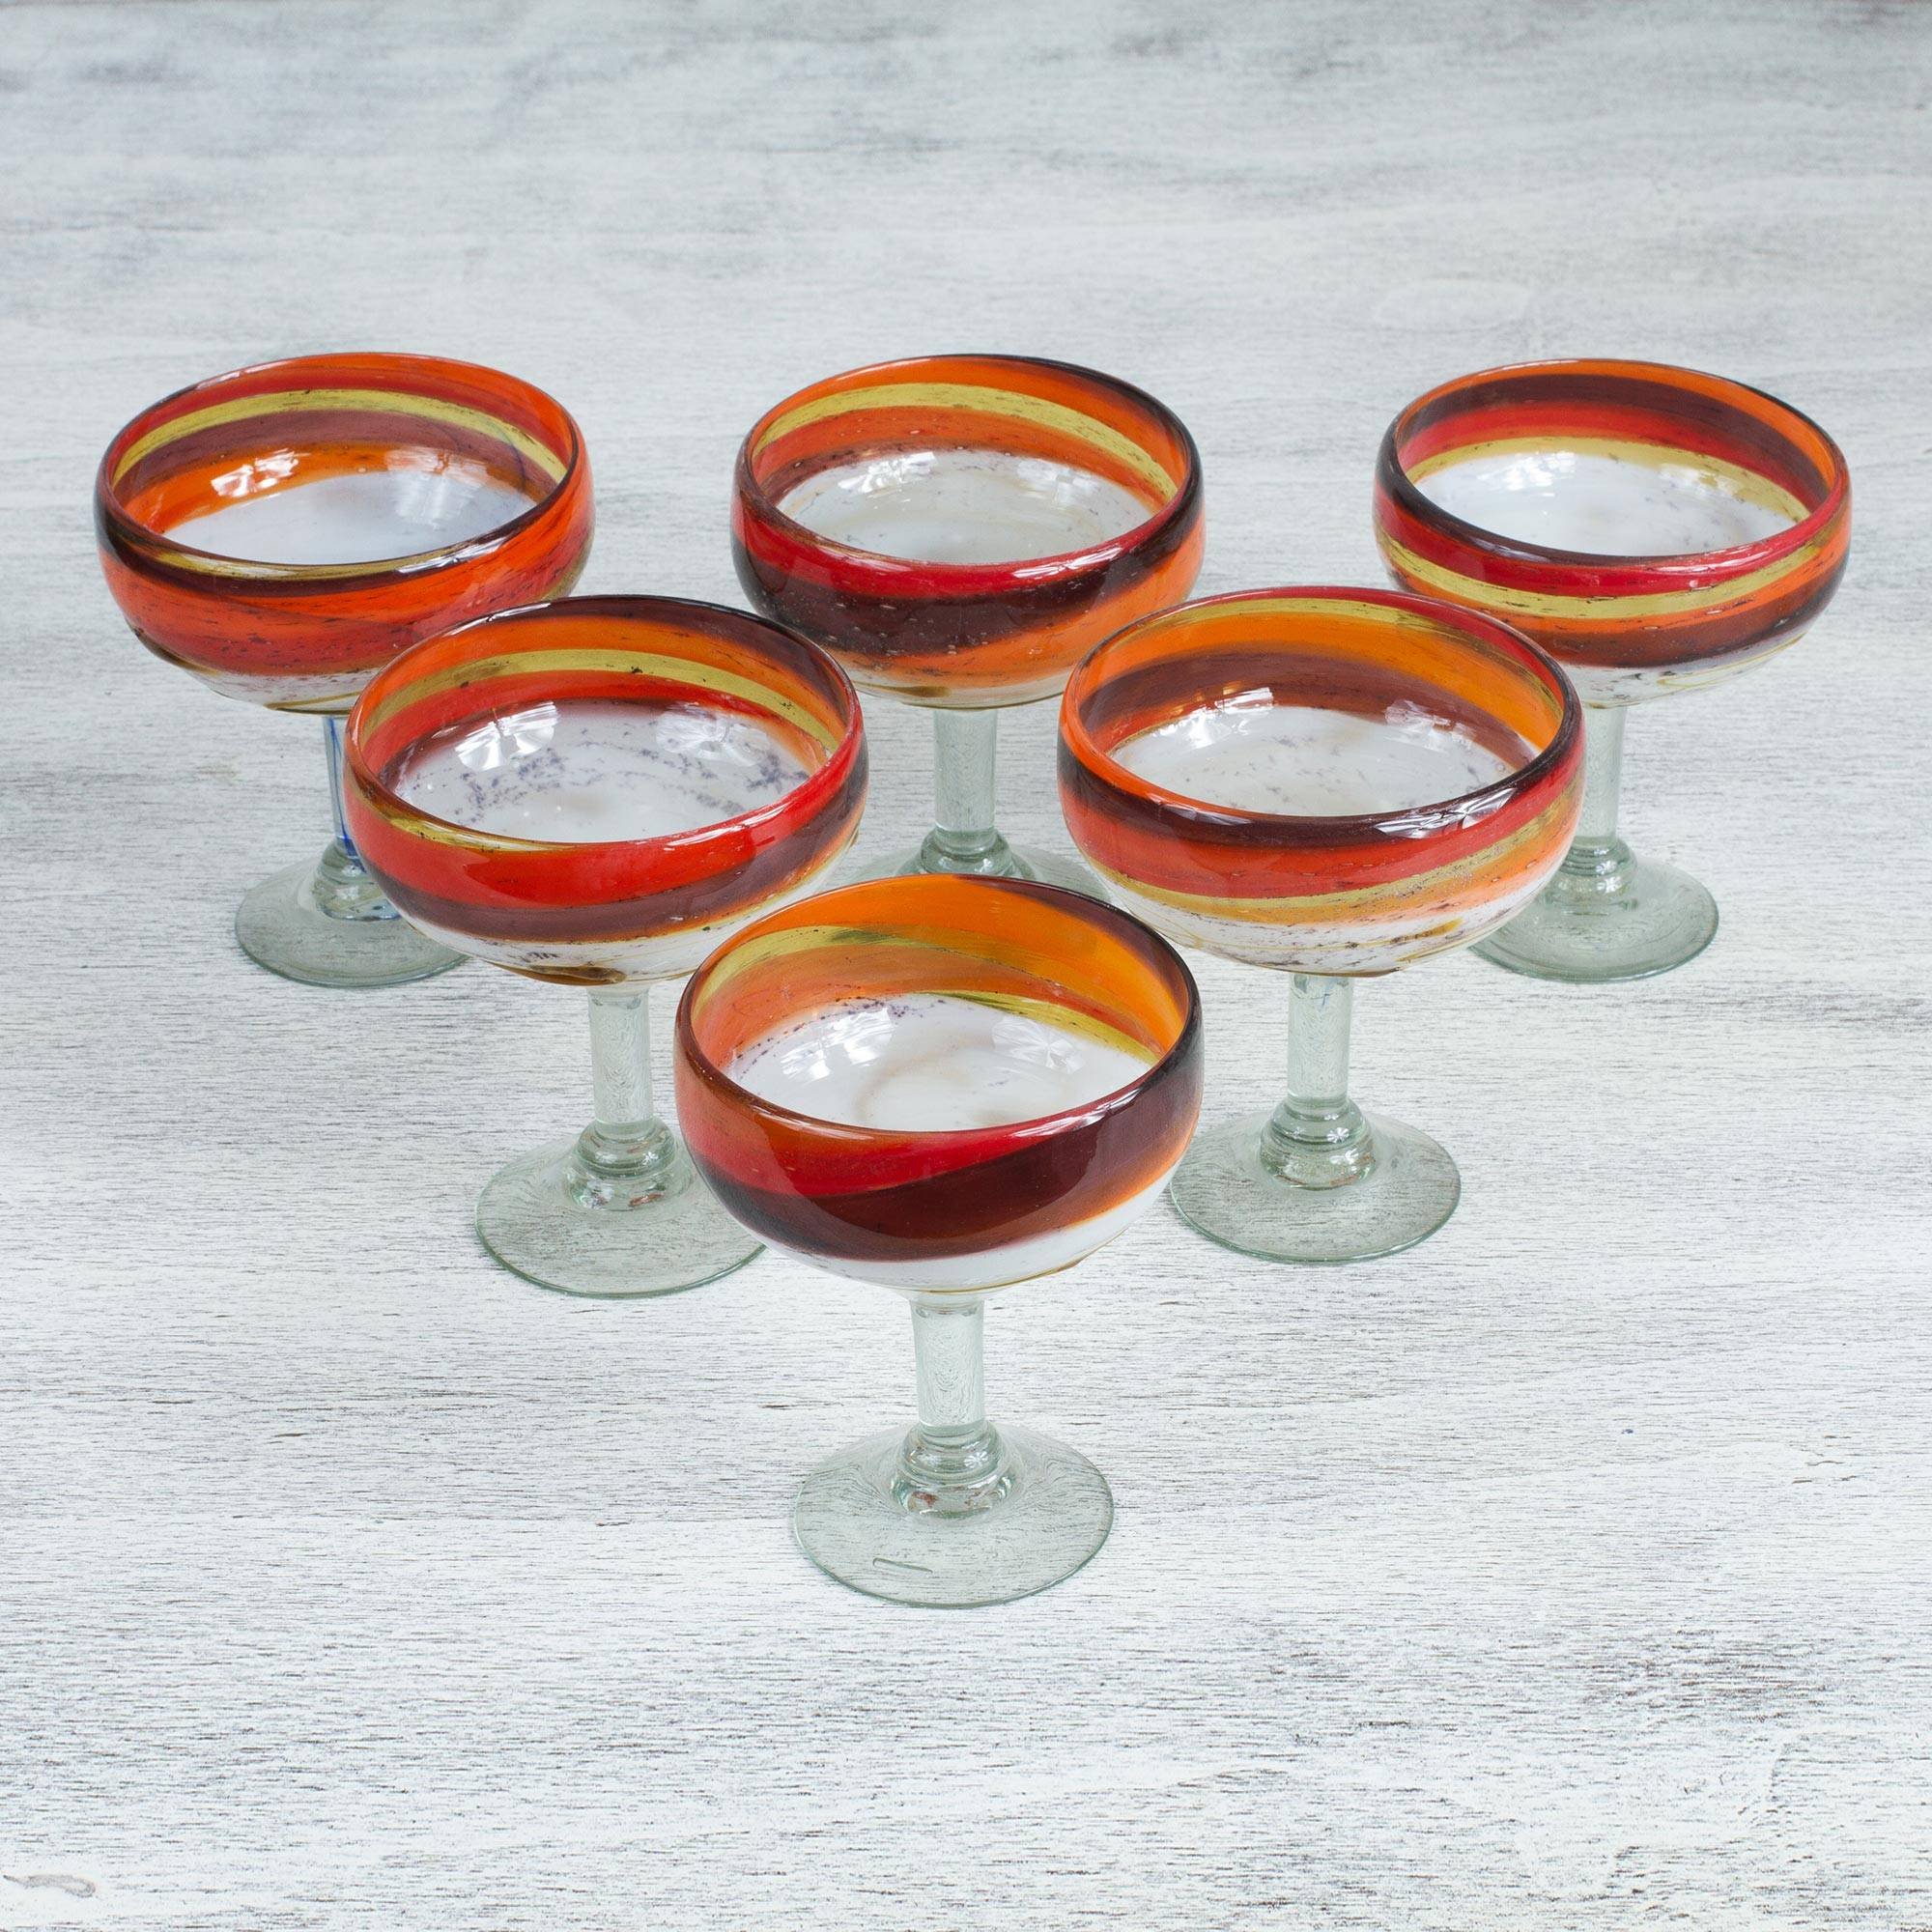 Caramel Fantasy Hand Crafted Blown Glass Brown Margarita Glasses (Set of 6) essential glassware for your home bar